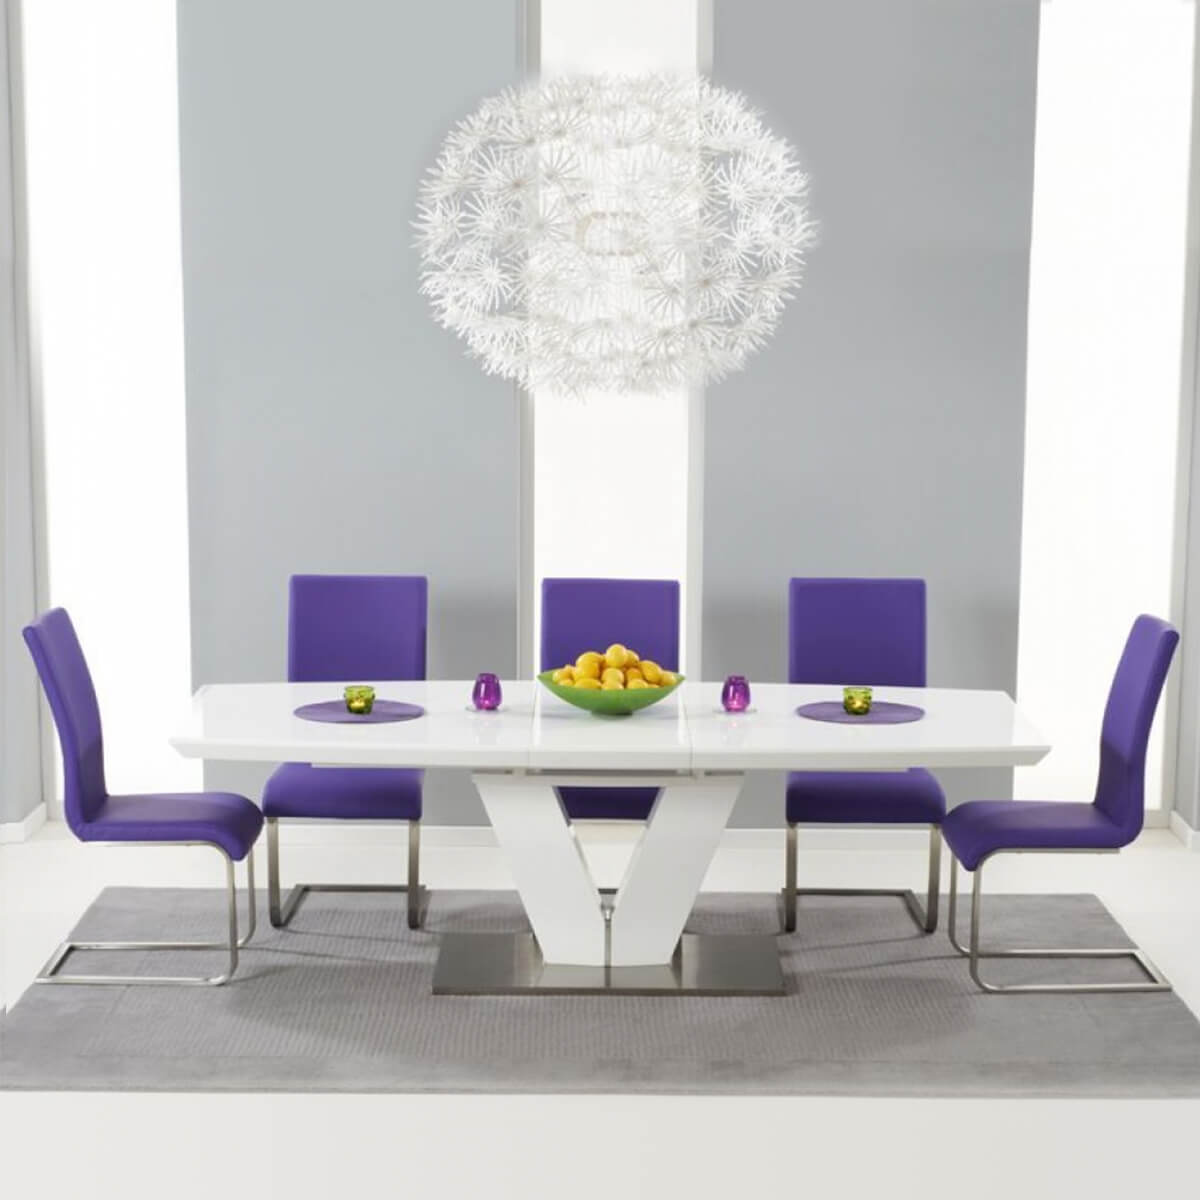 Malibu White Gloss Dining Table Multi Colour Dining Chairs Fads